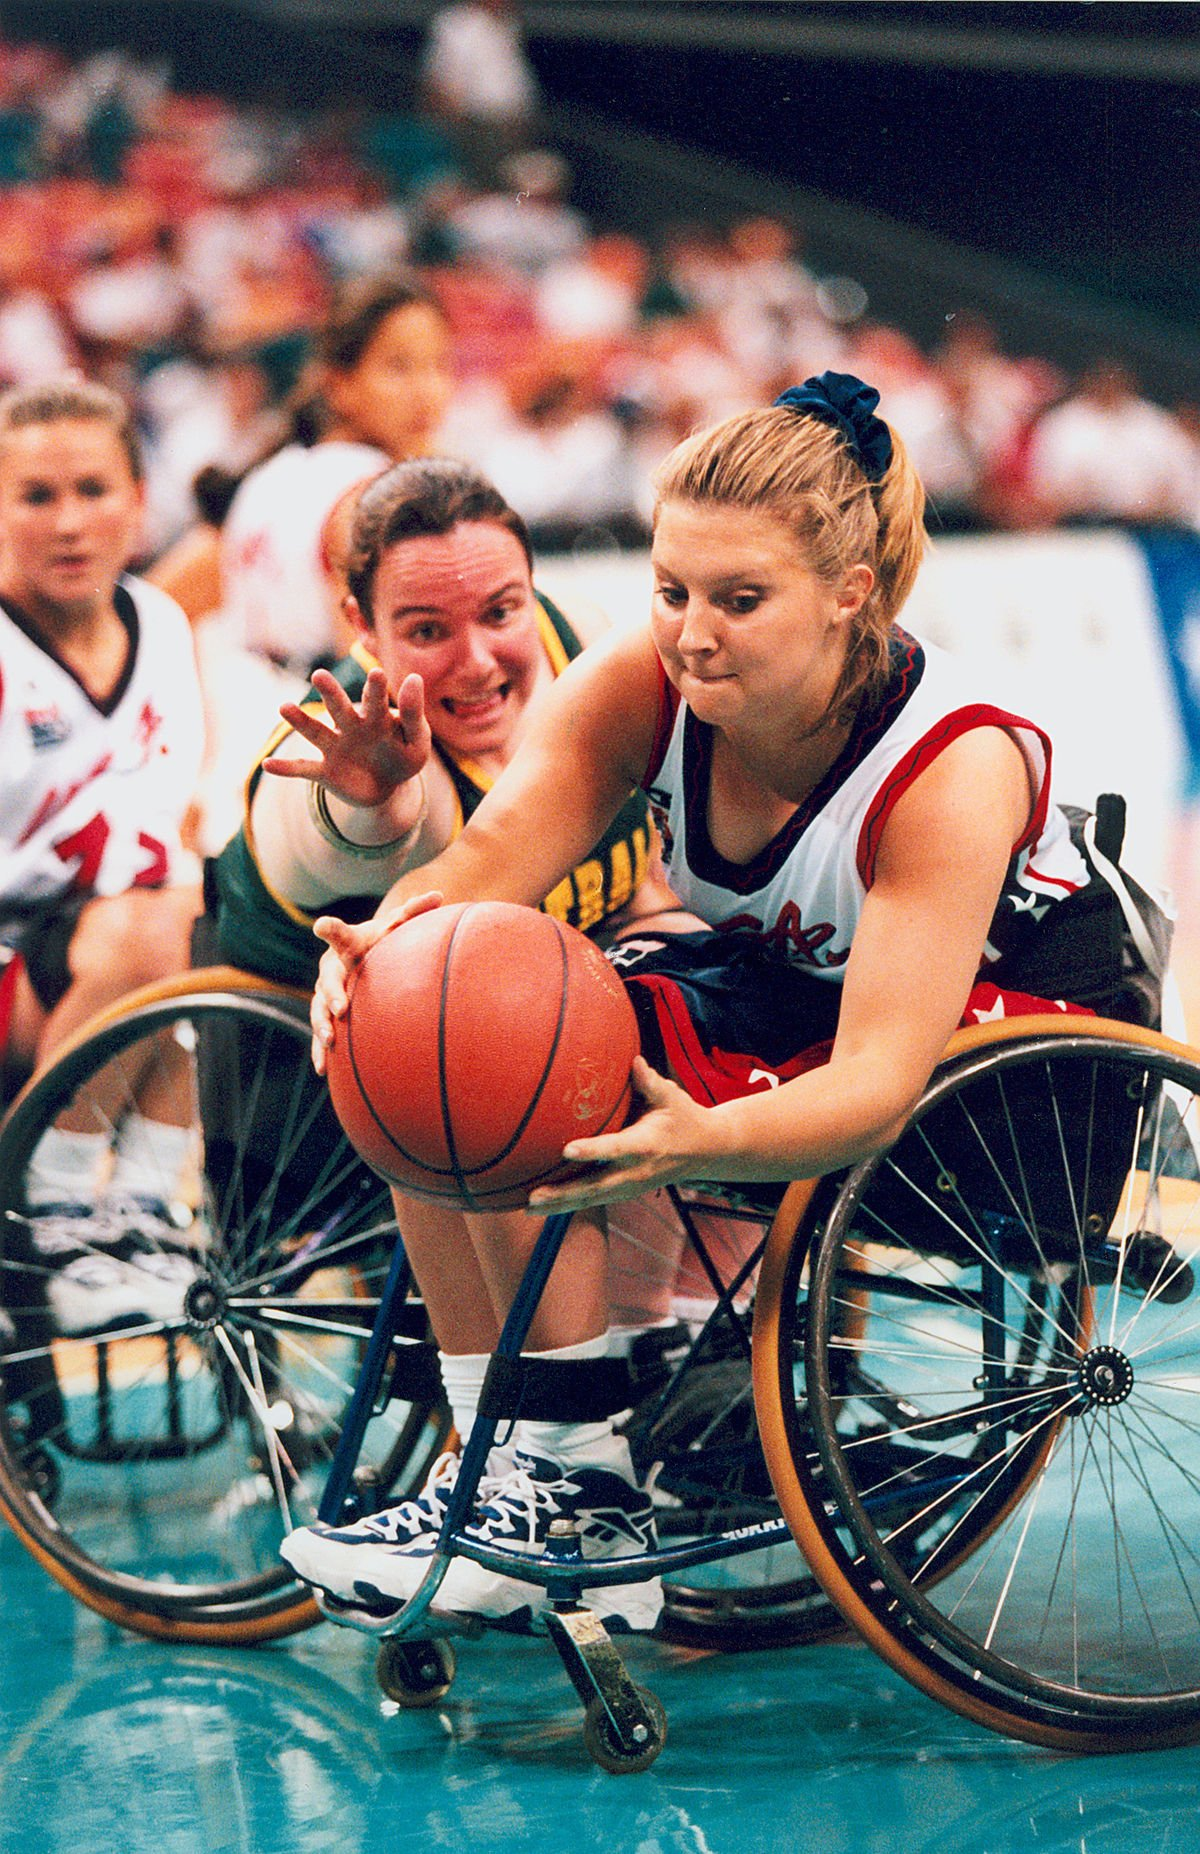 Two women in wheelchairs playing basketball